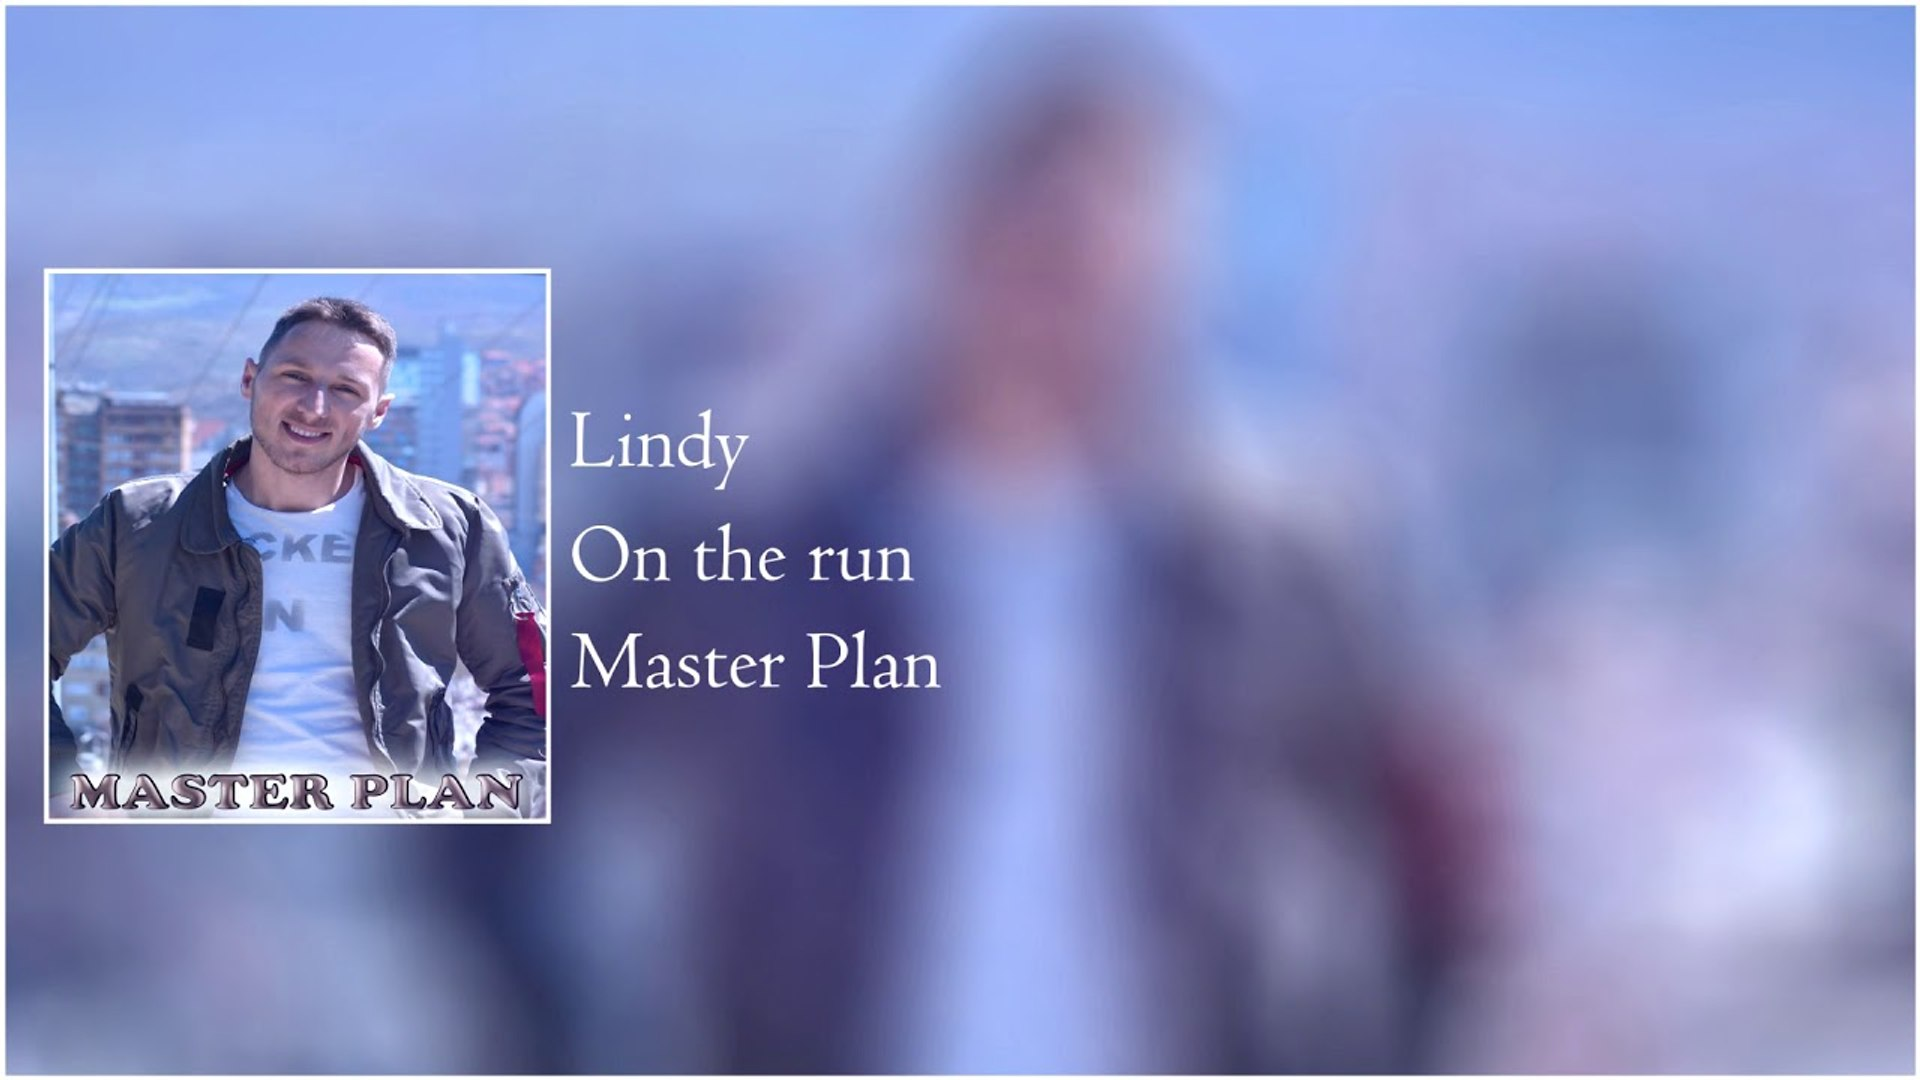 Lindy - On the run